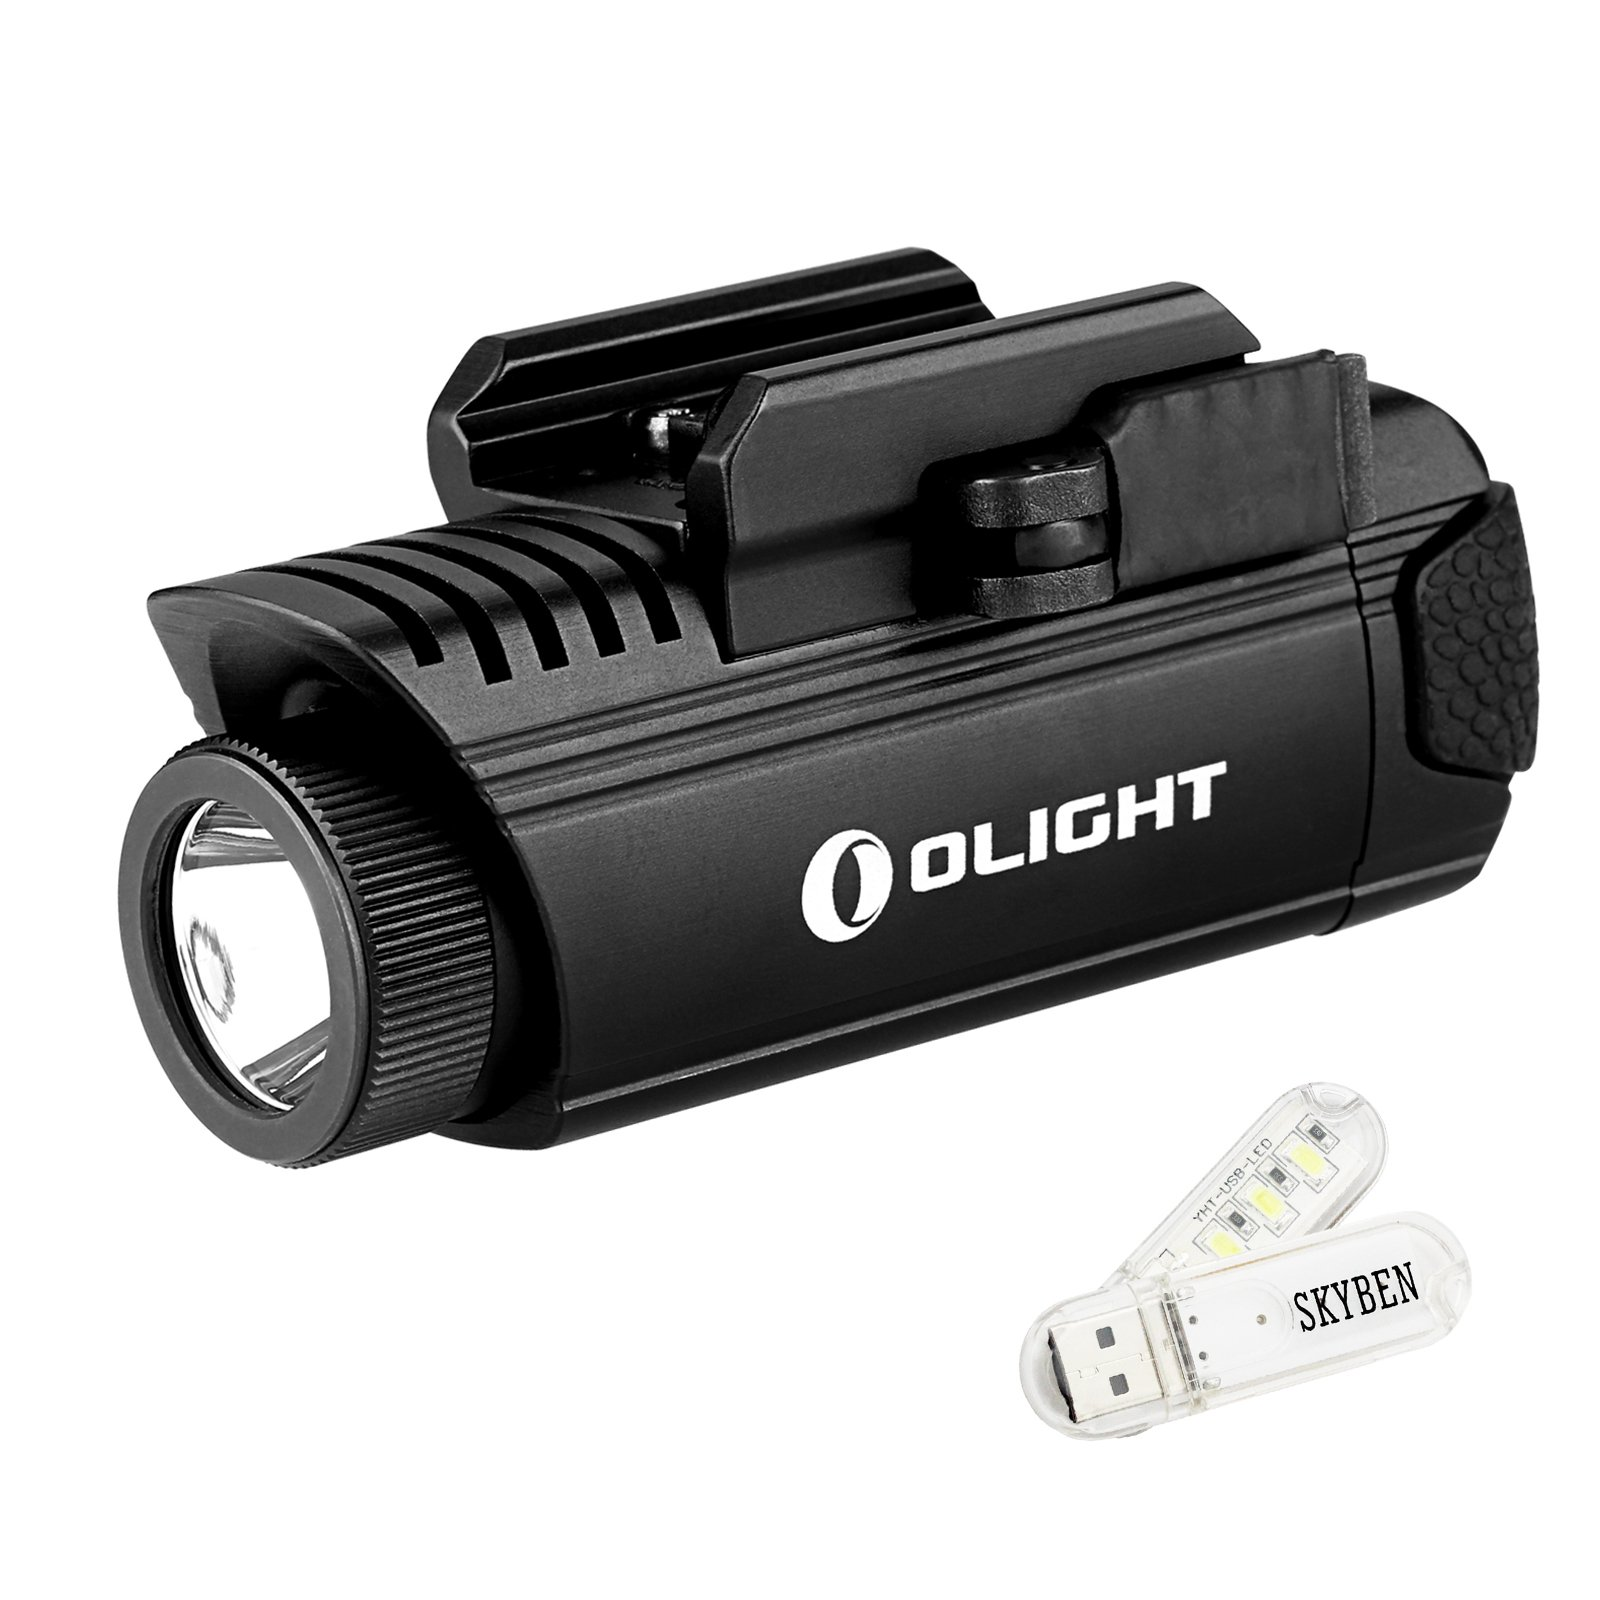 SKYBEN Olight PL1 II Valkyrie 450 Lumens LED Weaponlight Cree XP-L CW LED CR123A Flashlight with USB Light